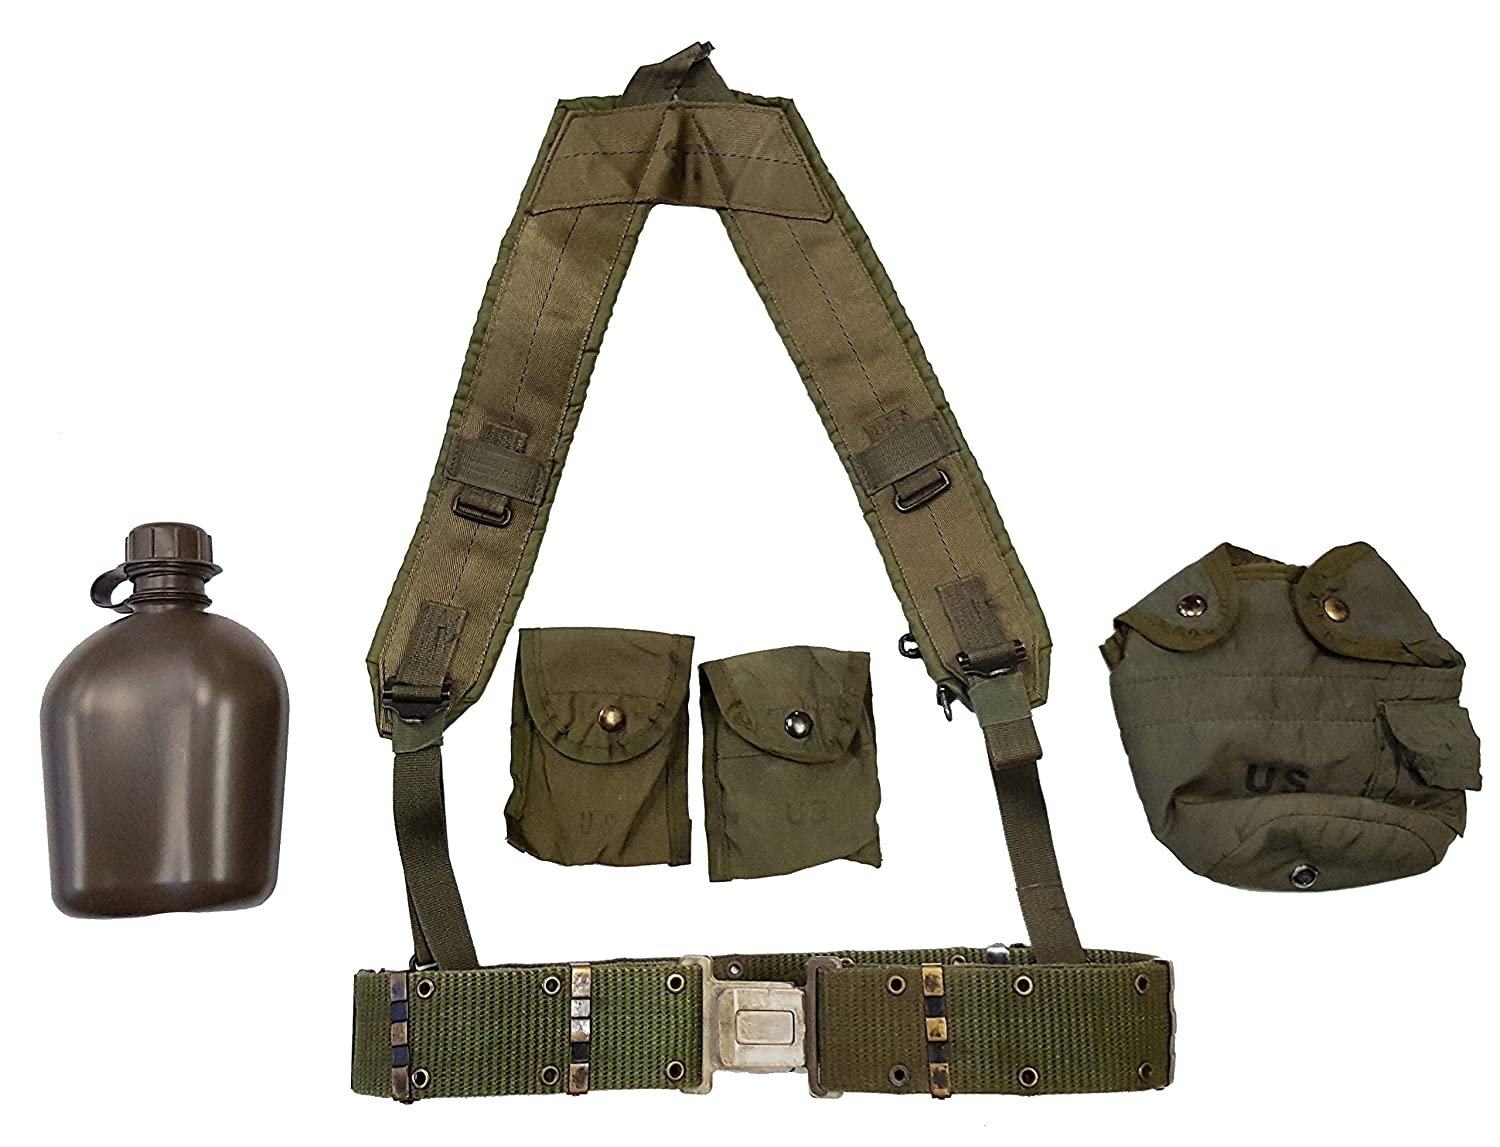 生まれのブランドで Military Outdoor Clothing以前issued US GI Outdoor OD Green Clothing以前issued Canteen Set with with Suspenders &コンパスポーチ B06XDF51ZF, ZERO:ec88e076 --- a0267596.xsph.ru